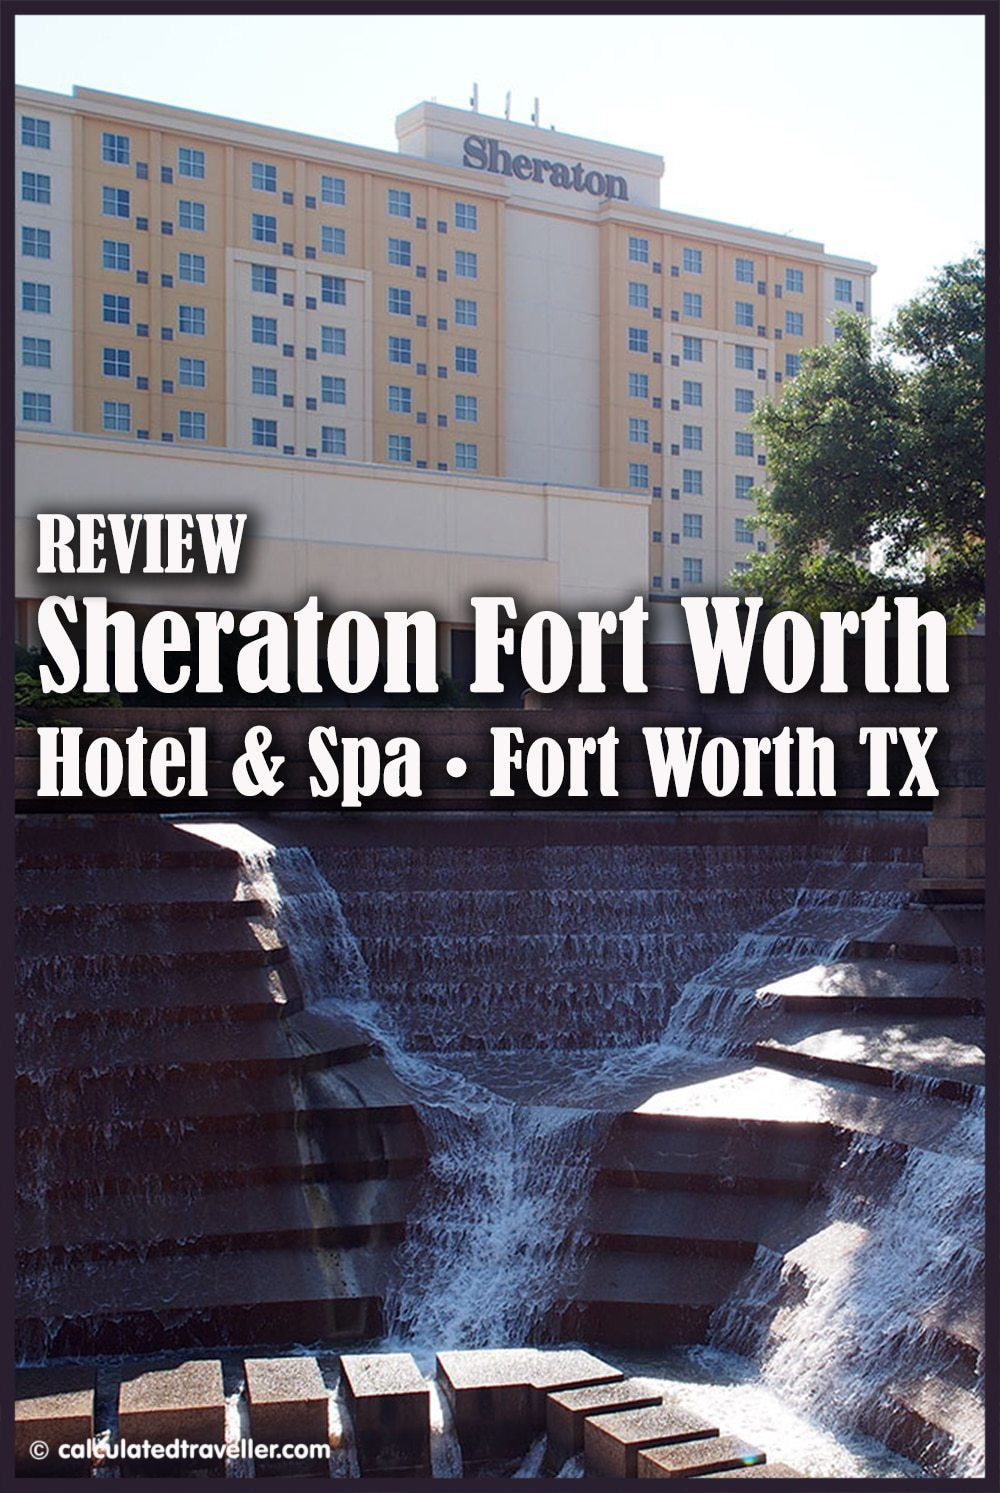 Review: Sheraton Fort Worth Hotel and Spa Texas - Calculated Traveller